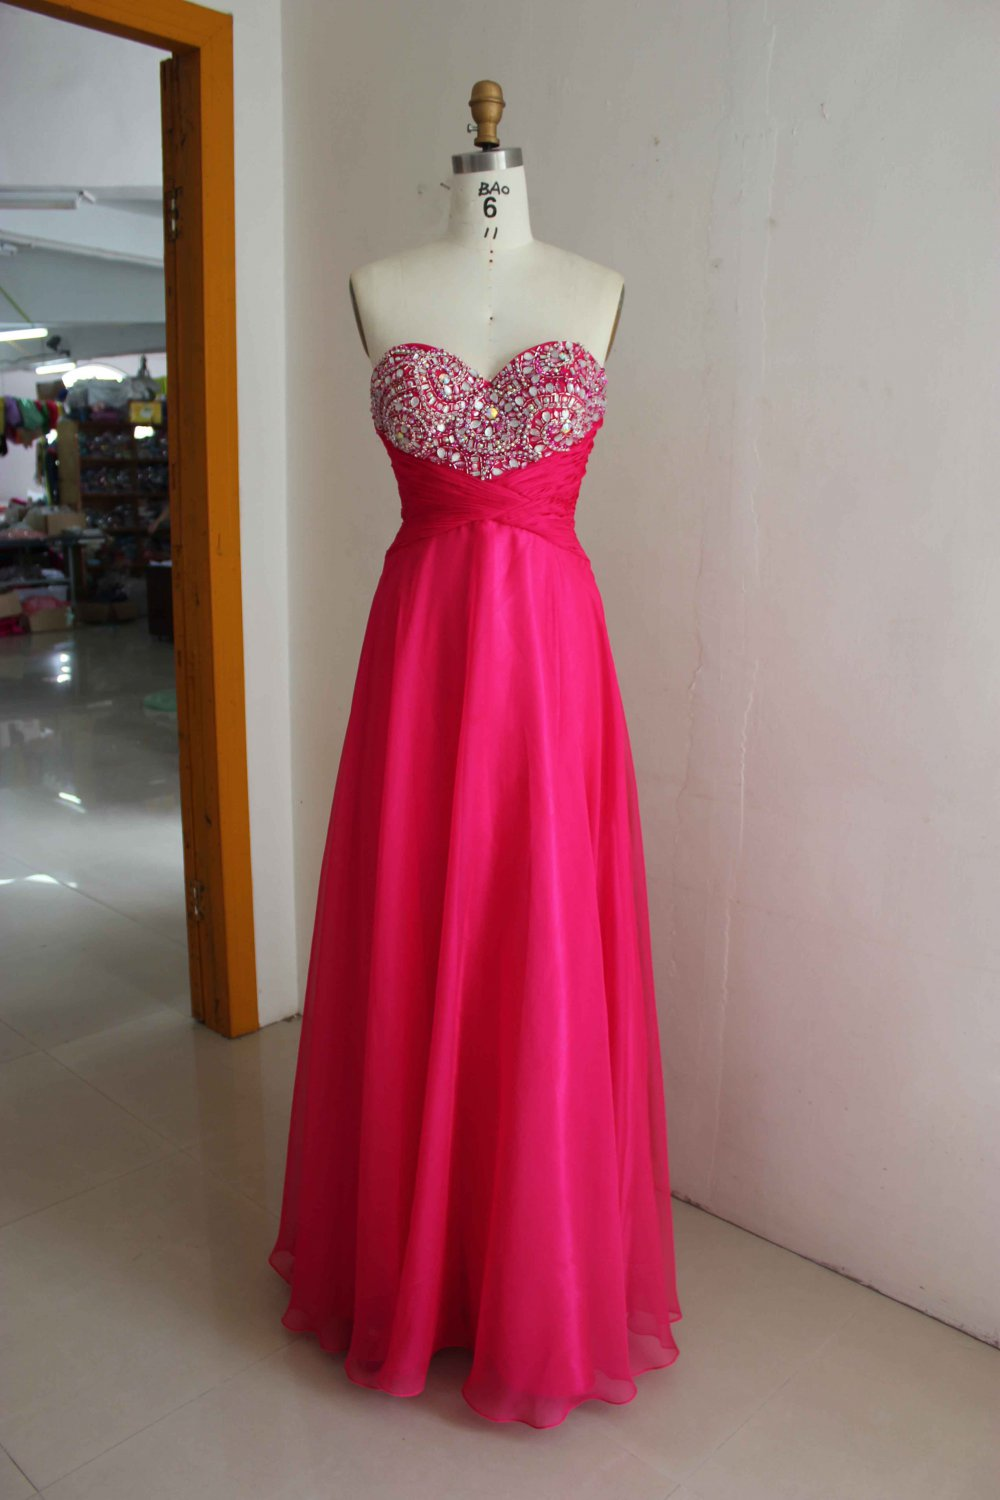 DP #hk1349 - x - Strapless Prom Dresses, Evening Gowns